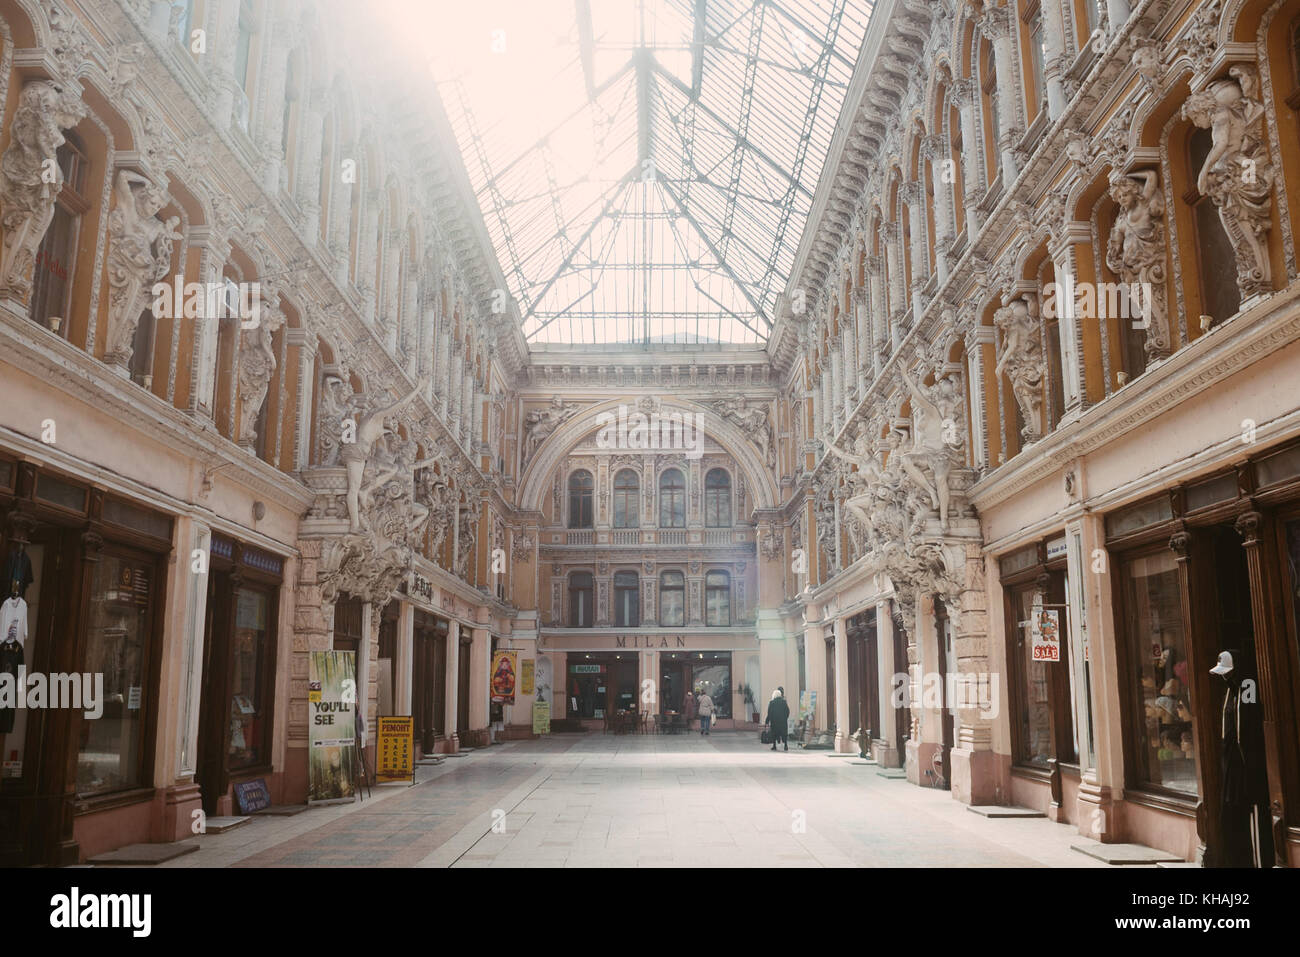 A shopping arcade lit up by the afternoon sun in Odessa, Ukraine - Stock Image